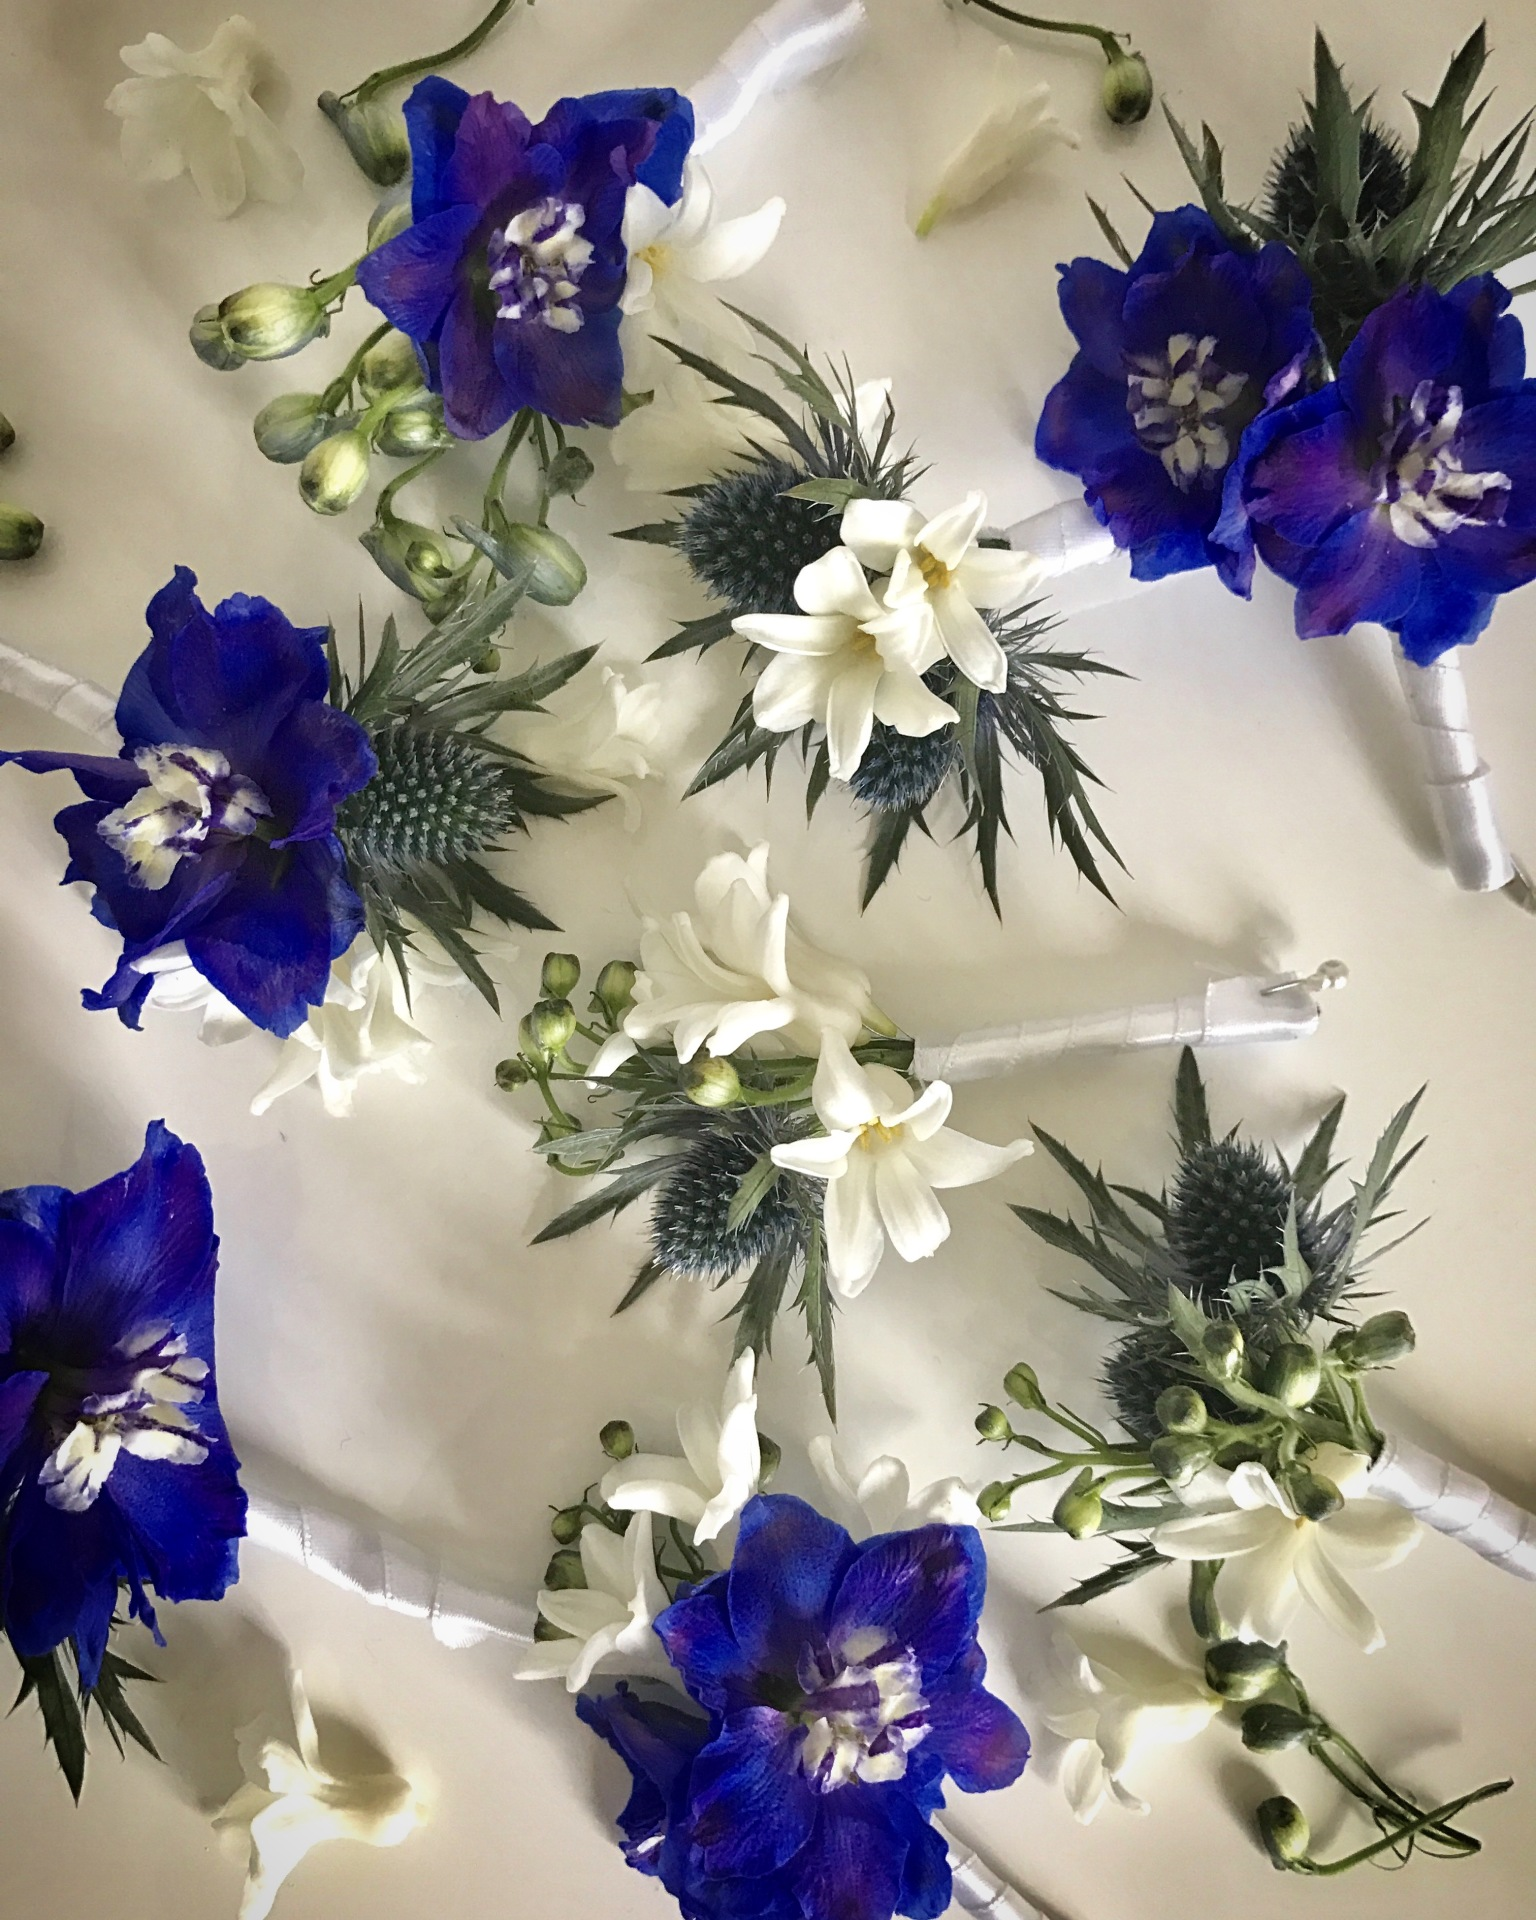 The Petersham buttonholes and corsages